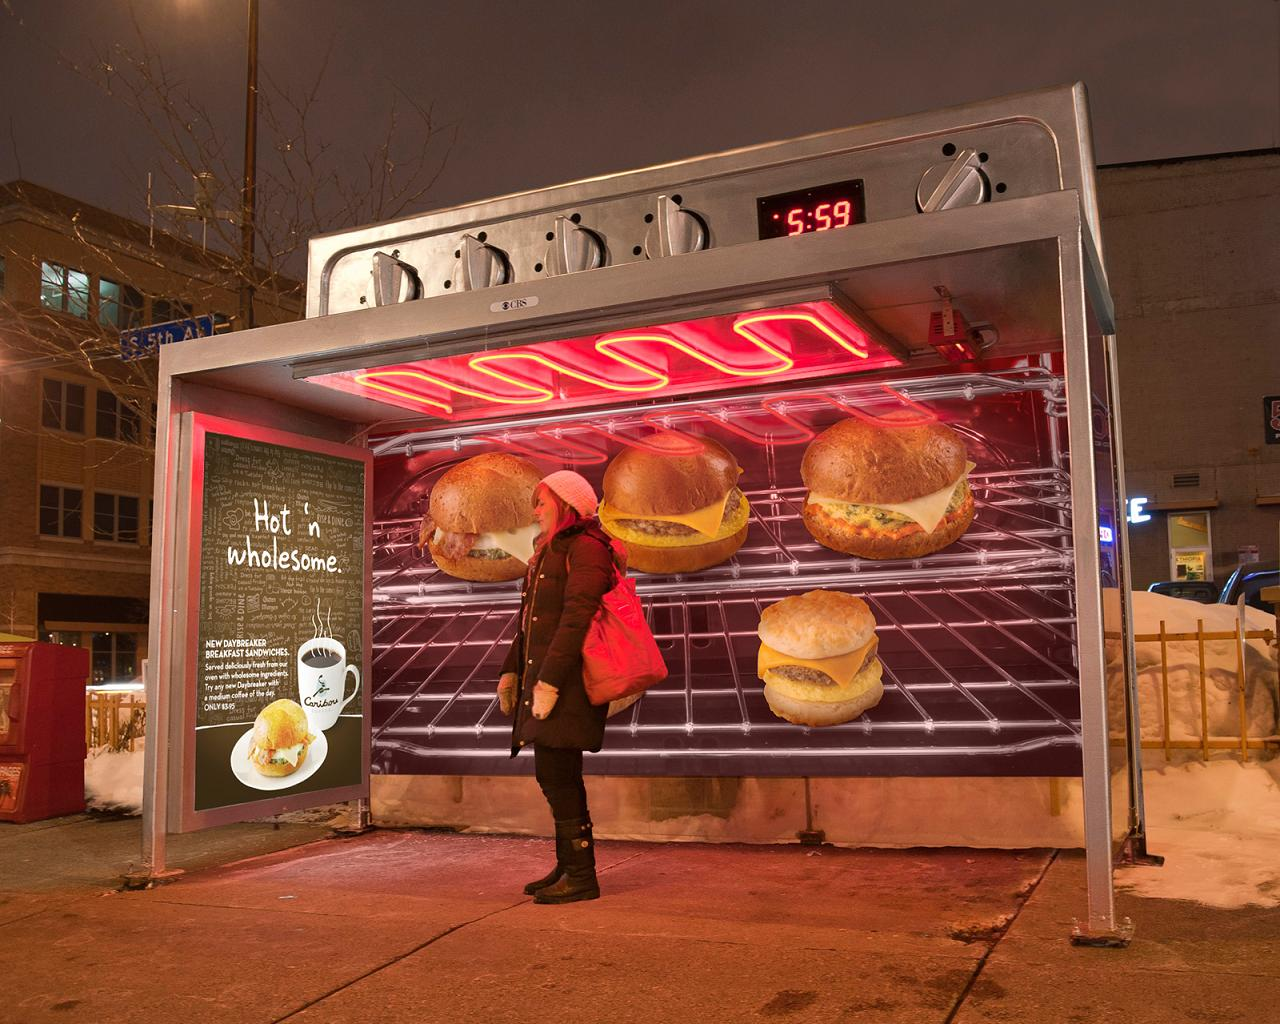 25 Clever and Unusual Bus Stop Advertisements – Part 2.